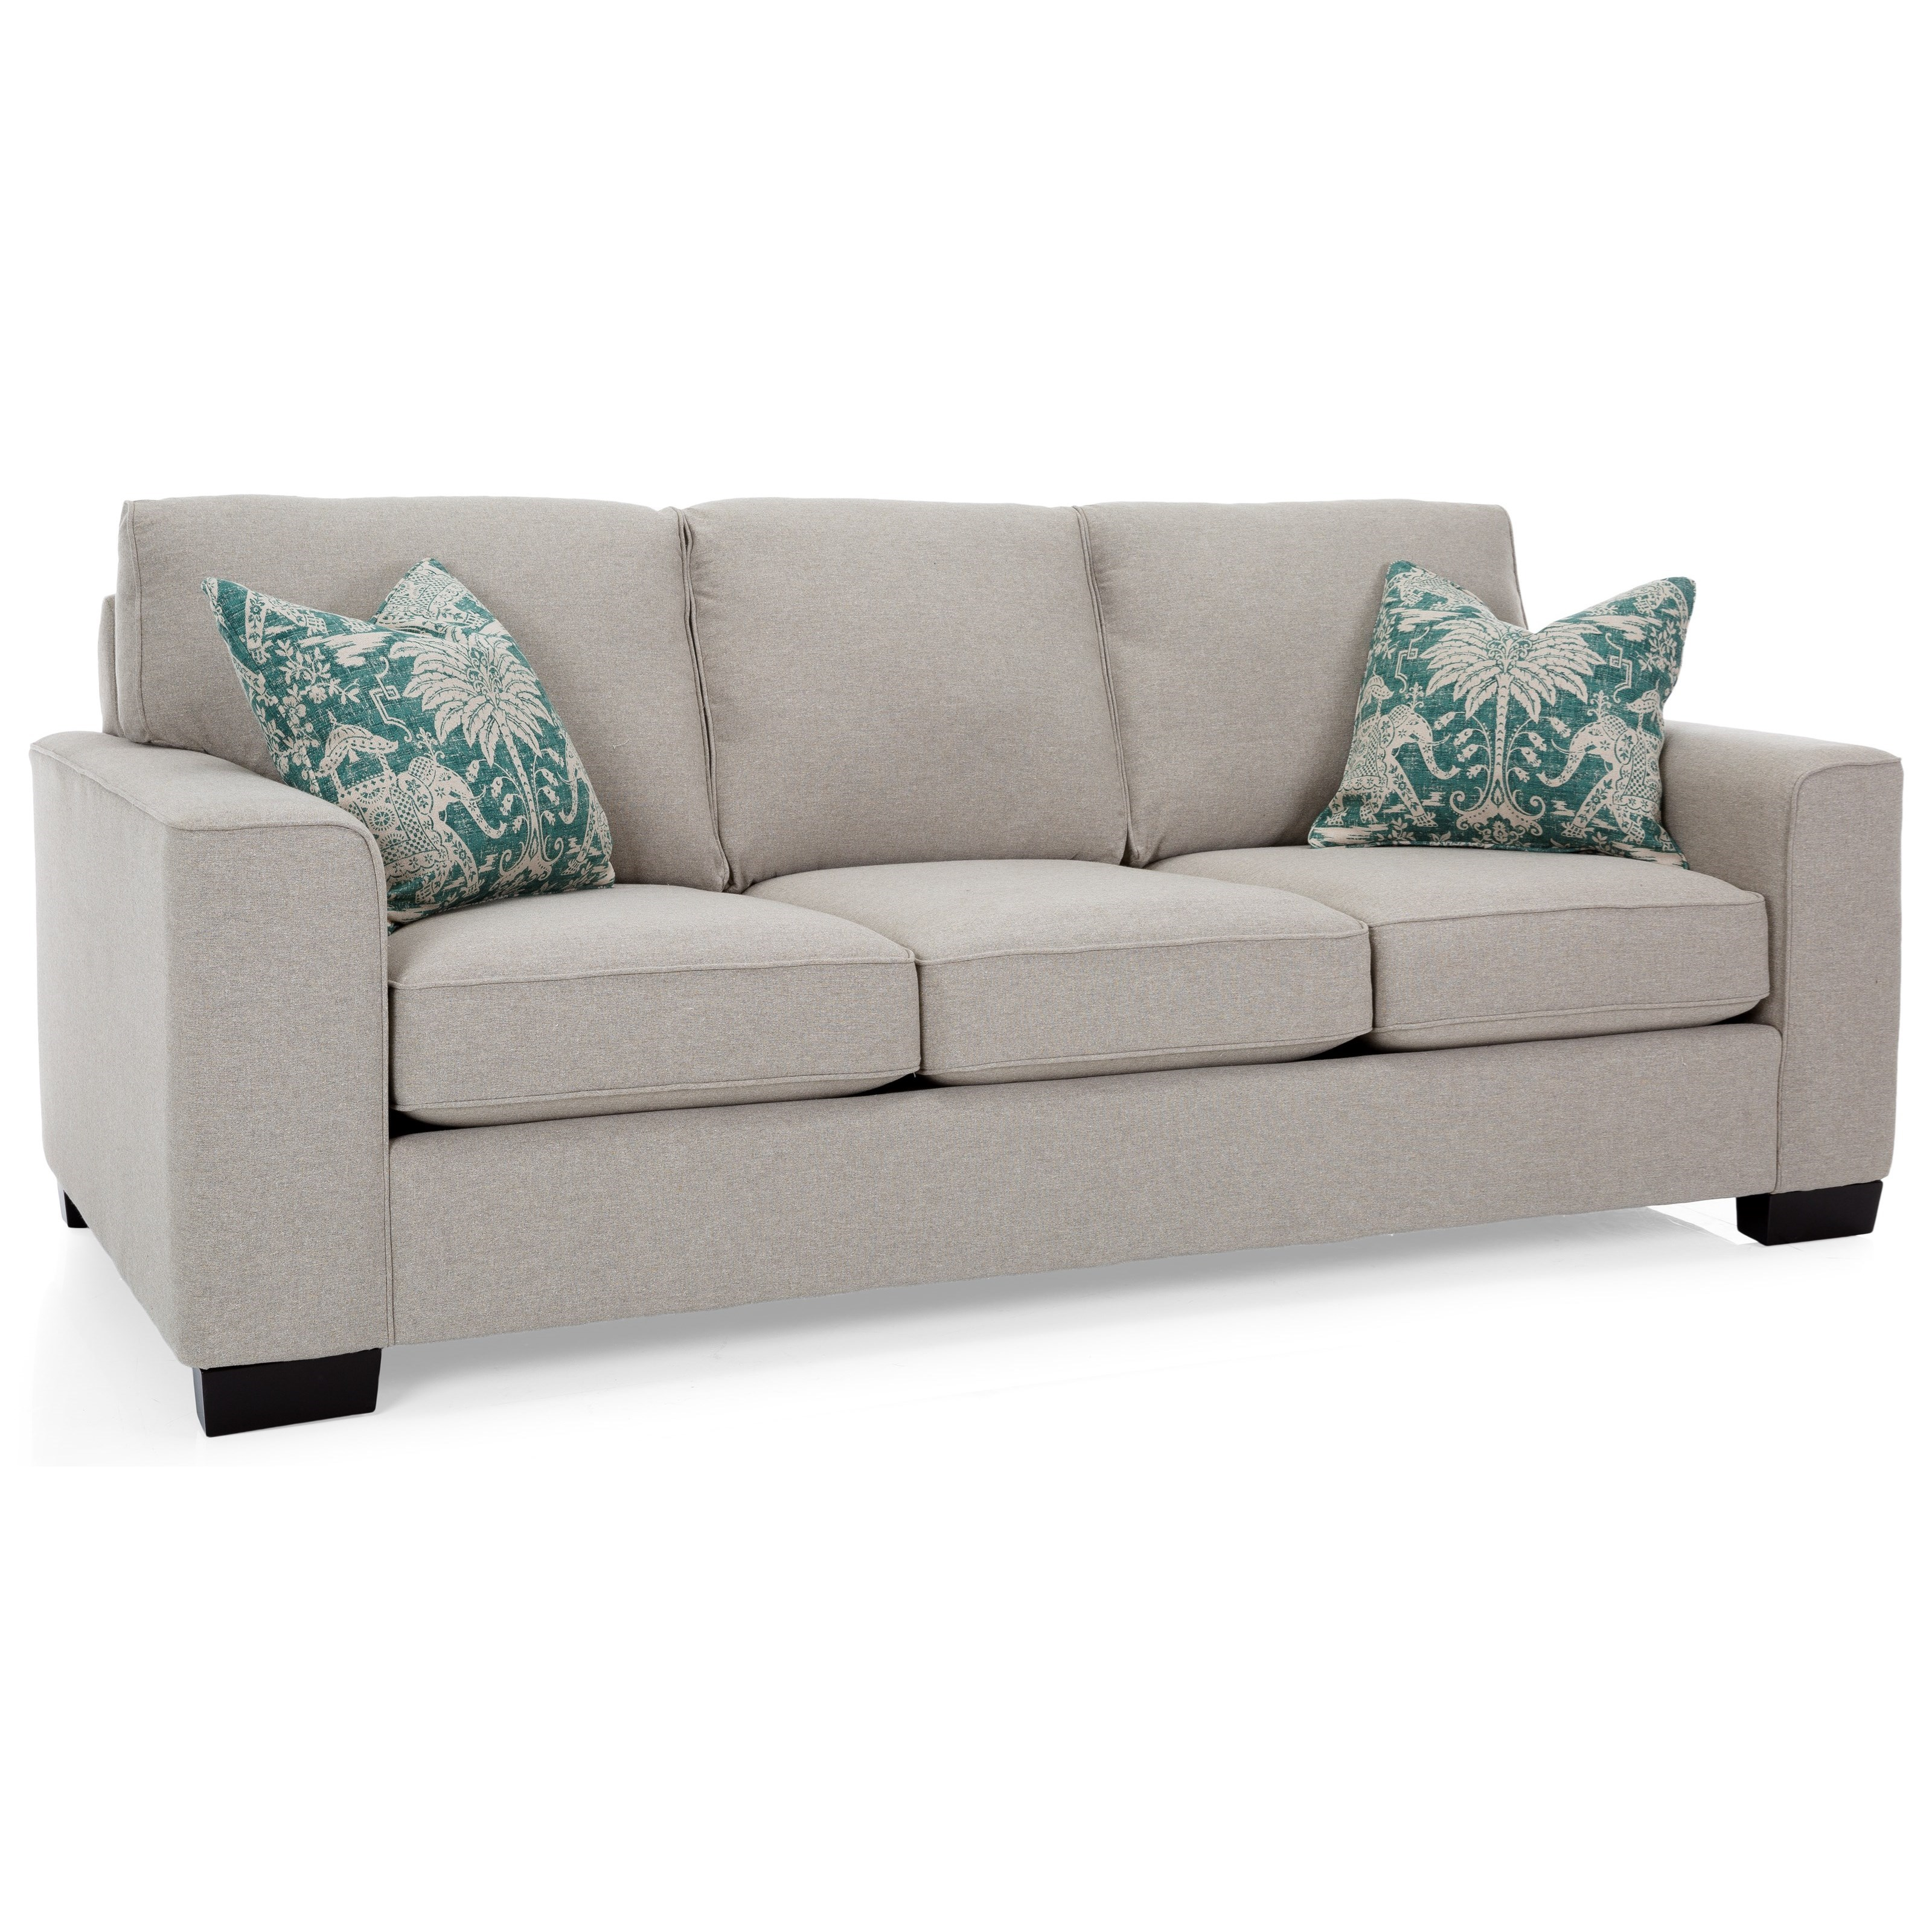 2483 Sofa by Decor-Rest at Rooms for Less